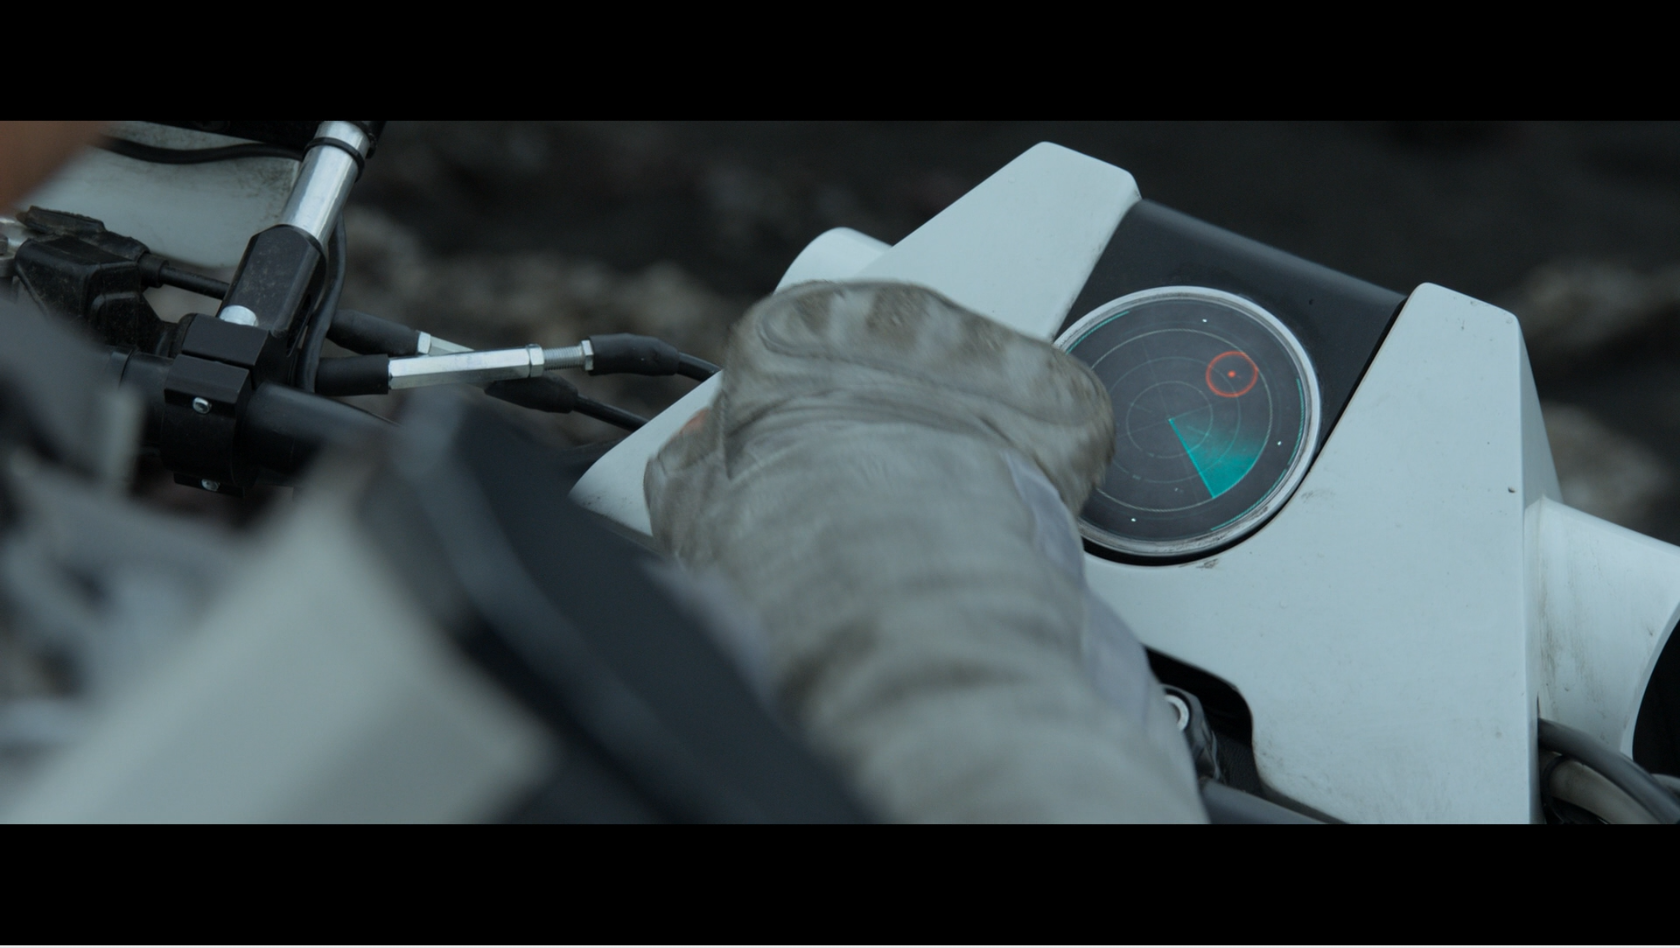 A still of the interface design in Oblivion showing Jack's motorcycle interface display indicating the positions of drones he is tracking